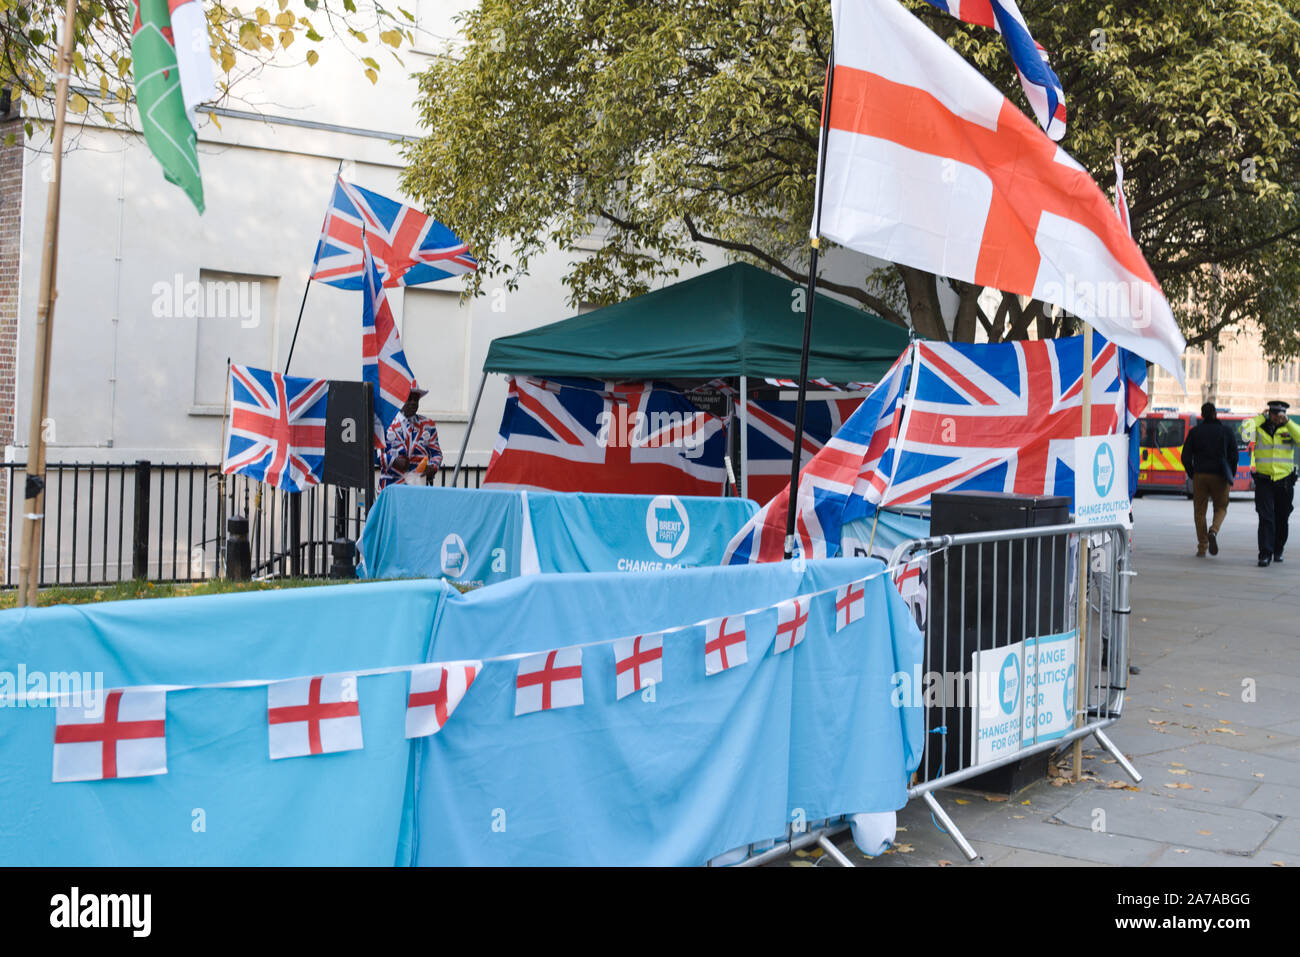 London,UK 31 October 2019. Pro Brexit protesters opposite Parliament. Stock Photo